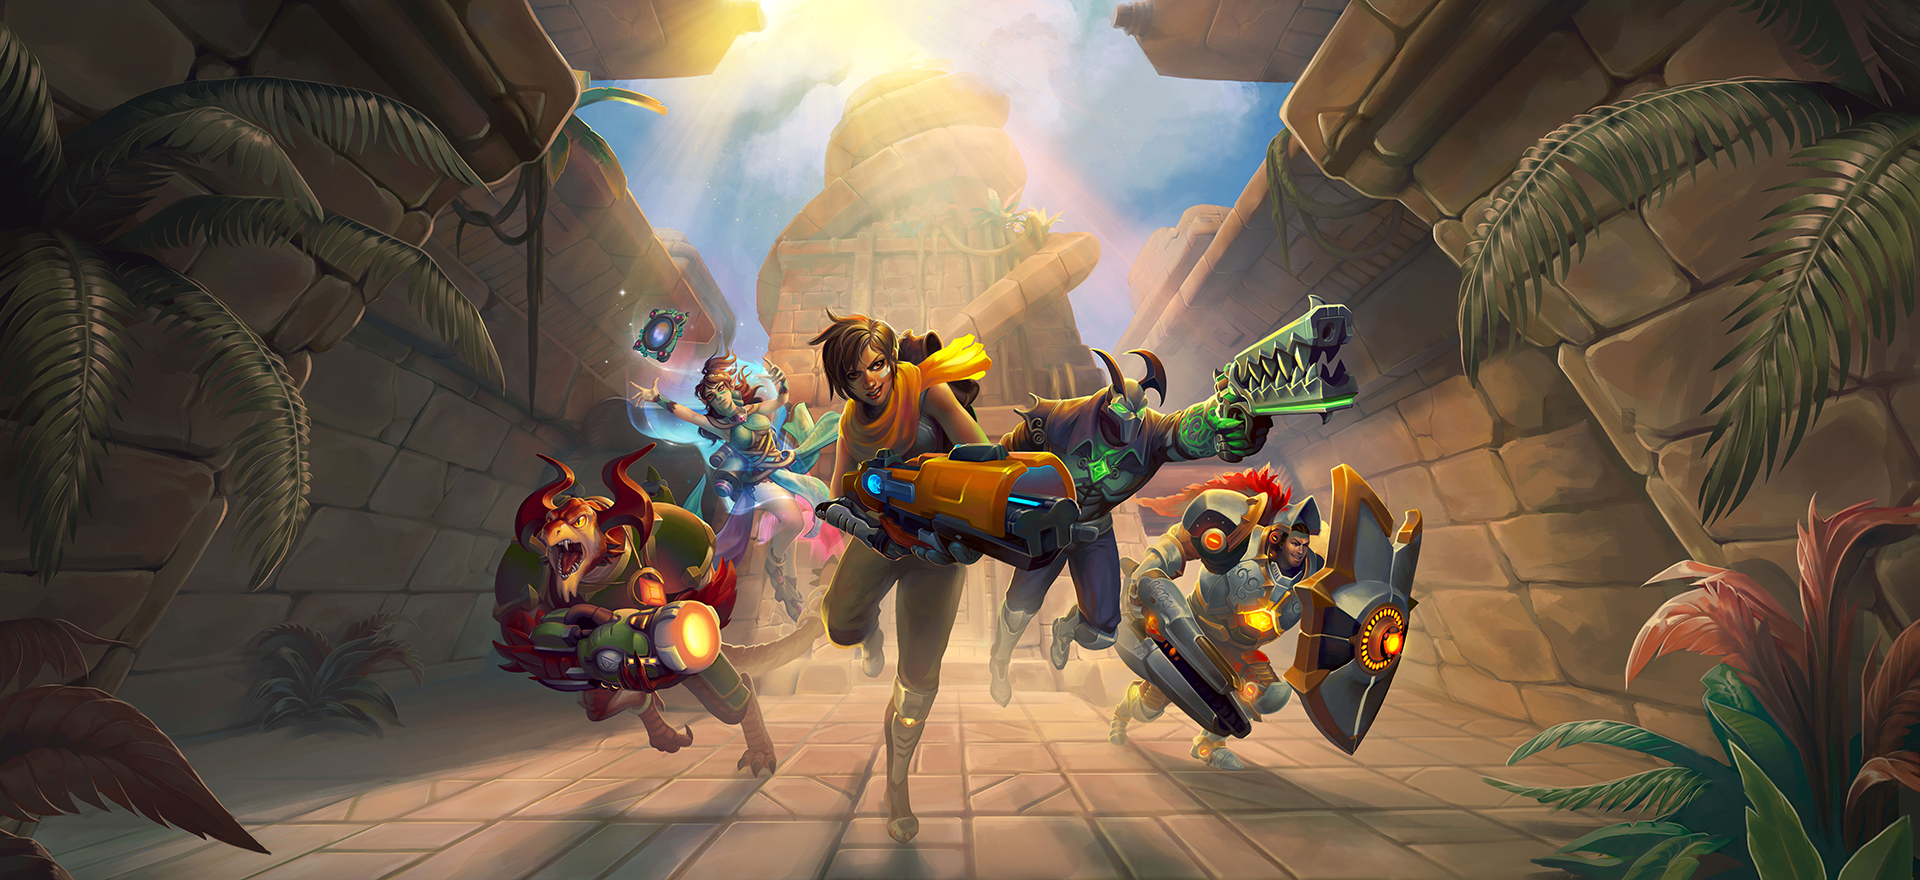 Disponible el parche 56 de Paladins en PlayStation 4 y Xbox One. Armas, competitivo y skins